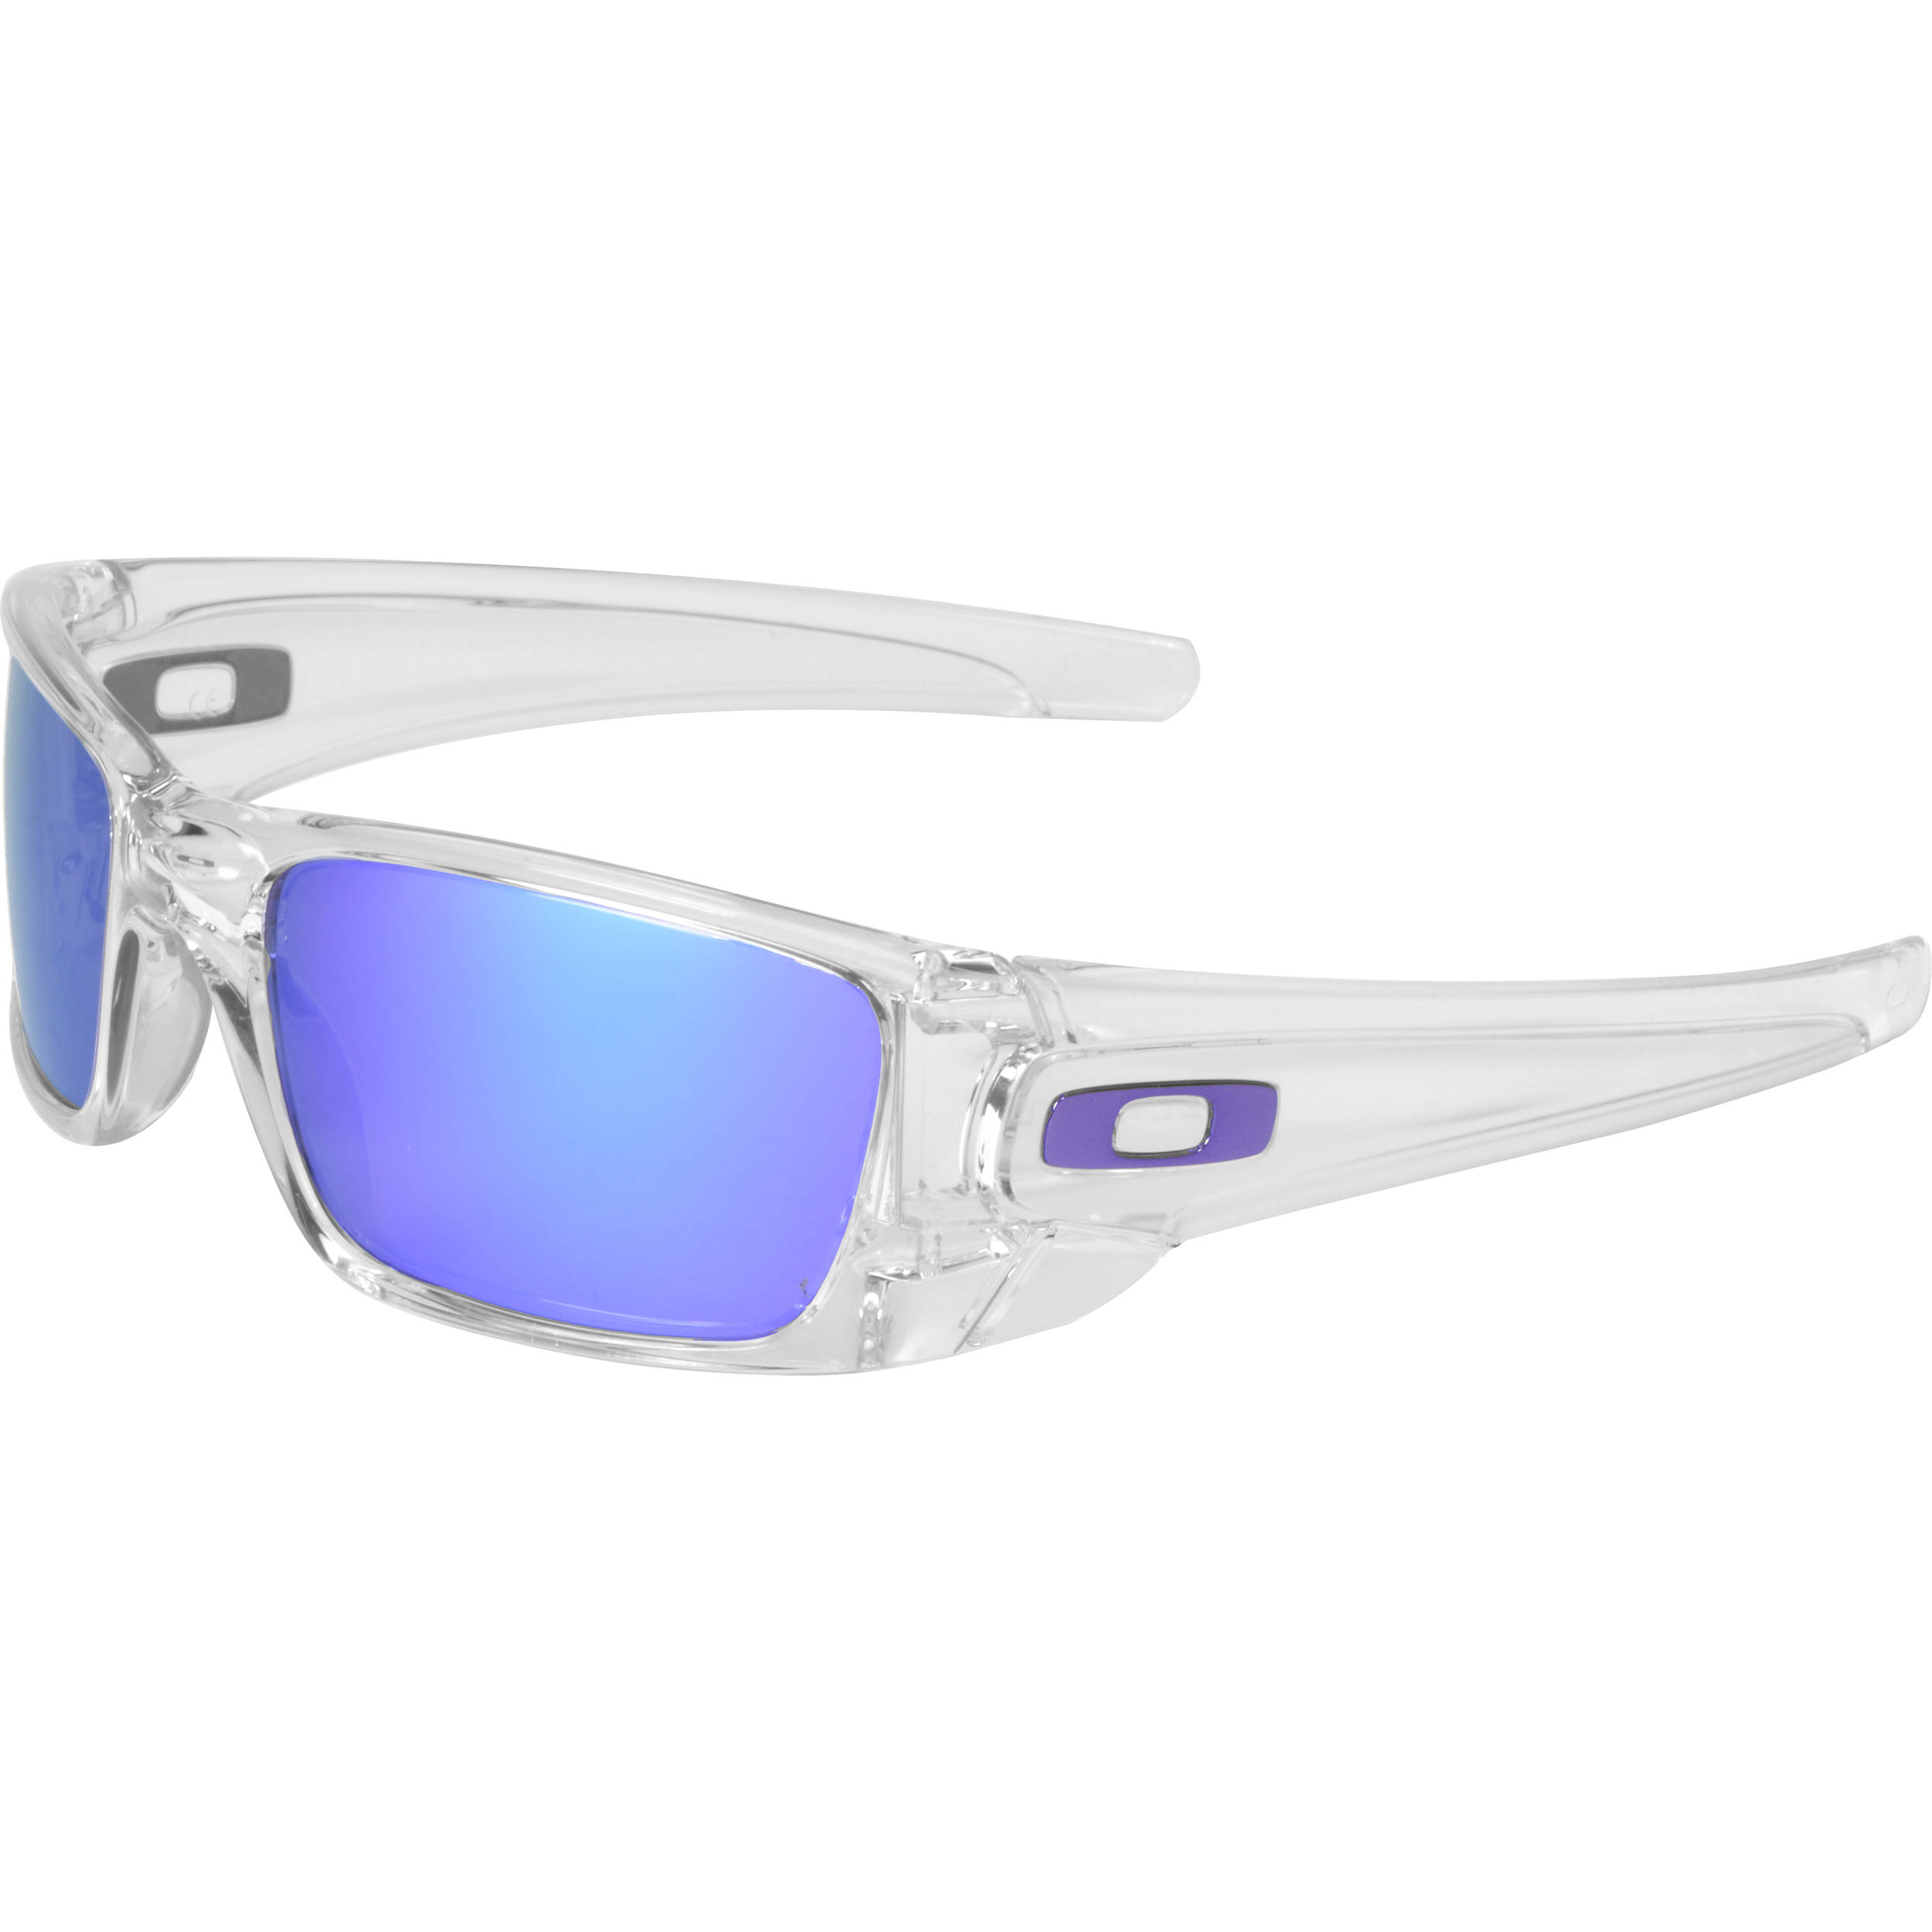 a9136e8971 Oakley Fuel Cell Clear Violet « Heritage Malta